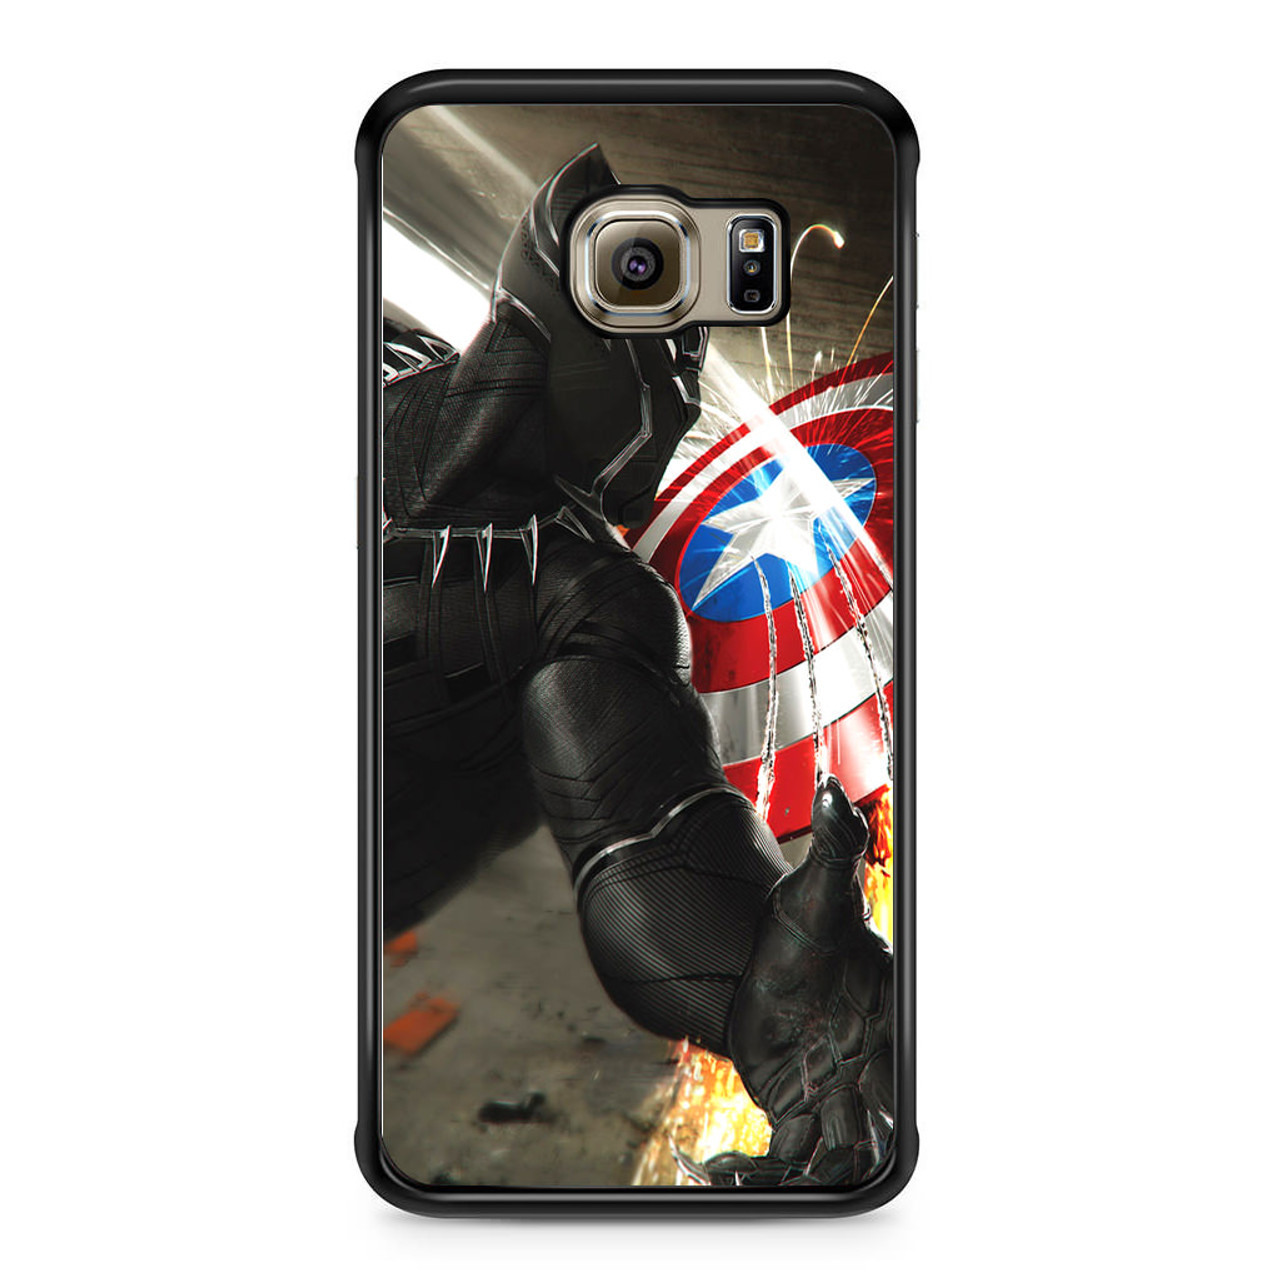 finest selection 90441 80f7d Black Panther Vs Captain America Samsung Galaxy S6 Edge Case